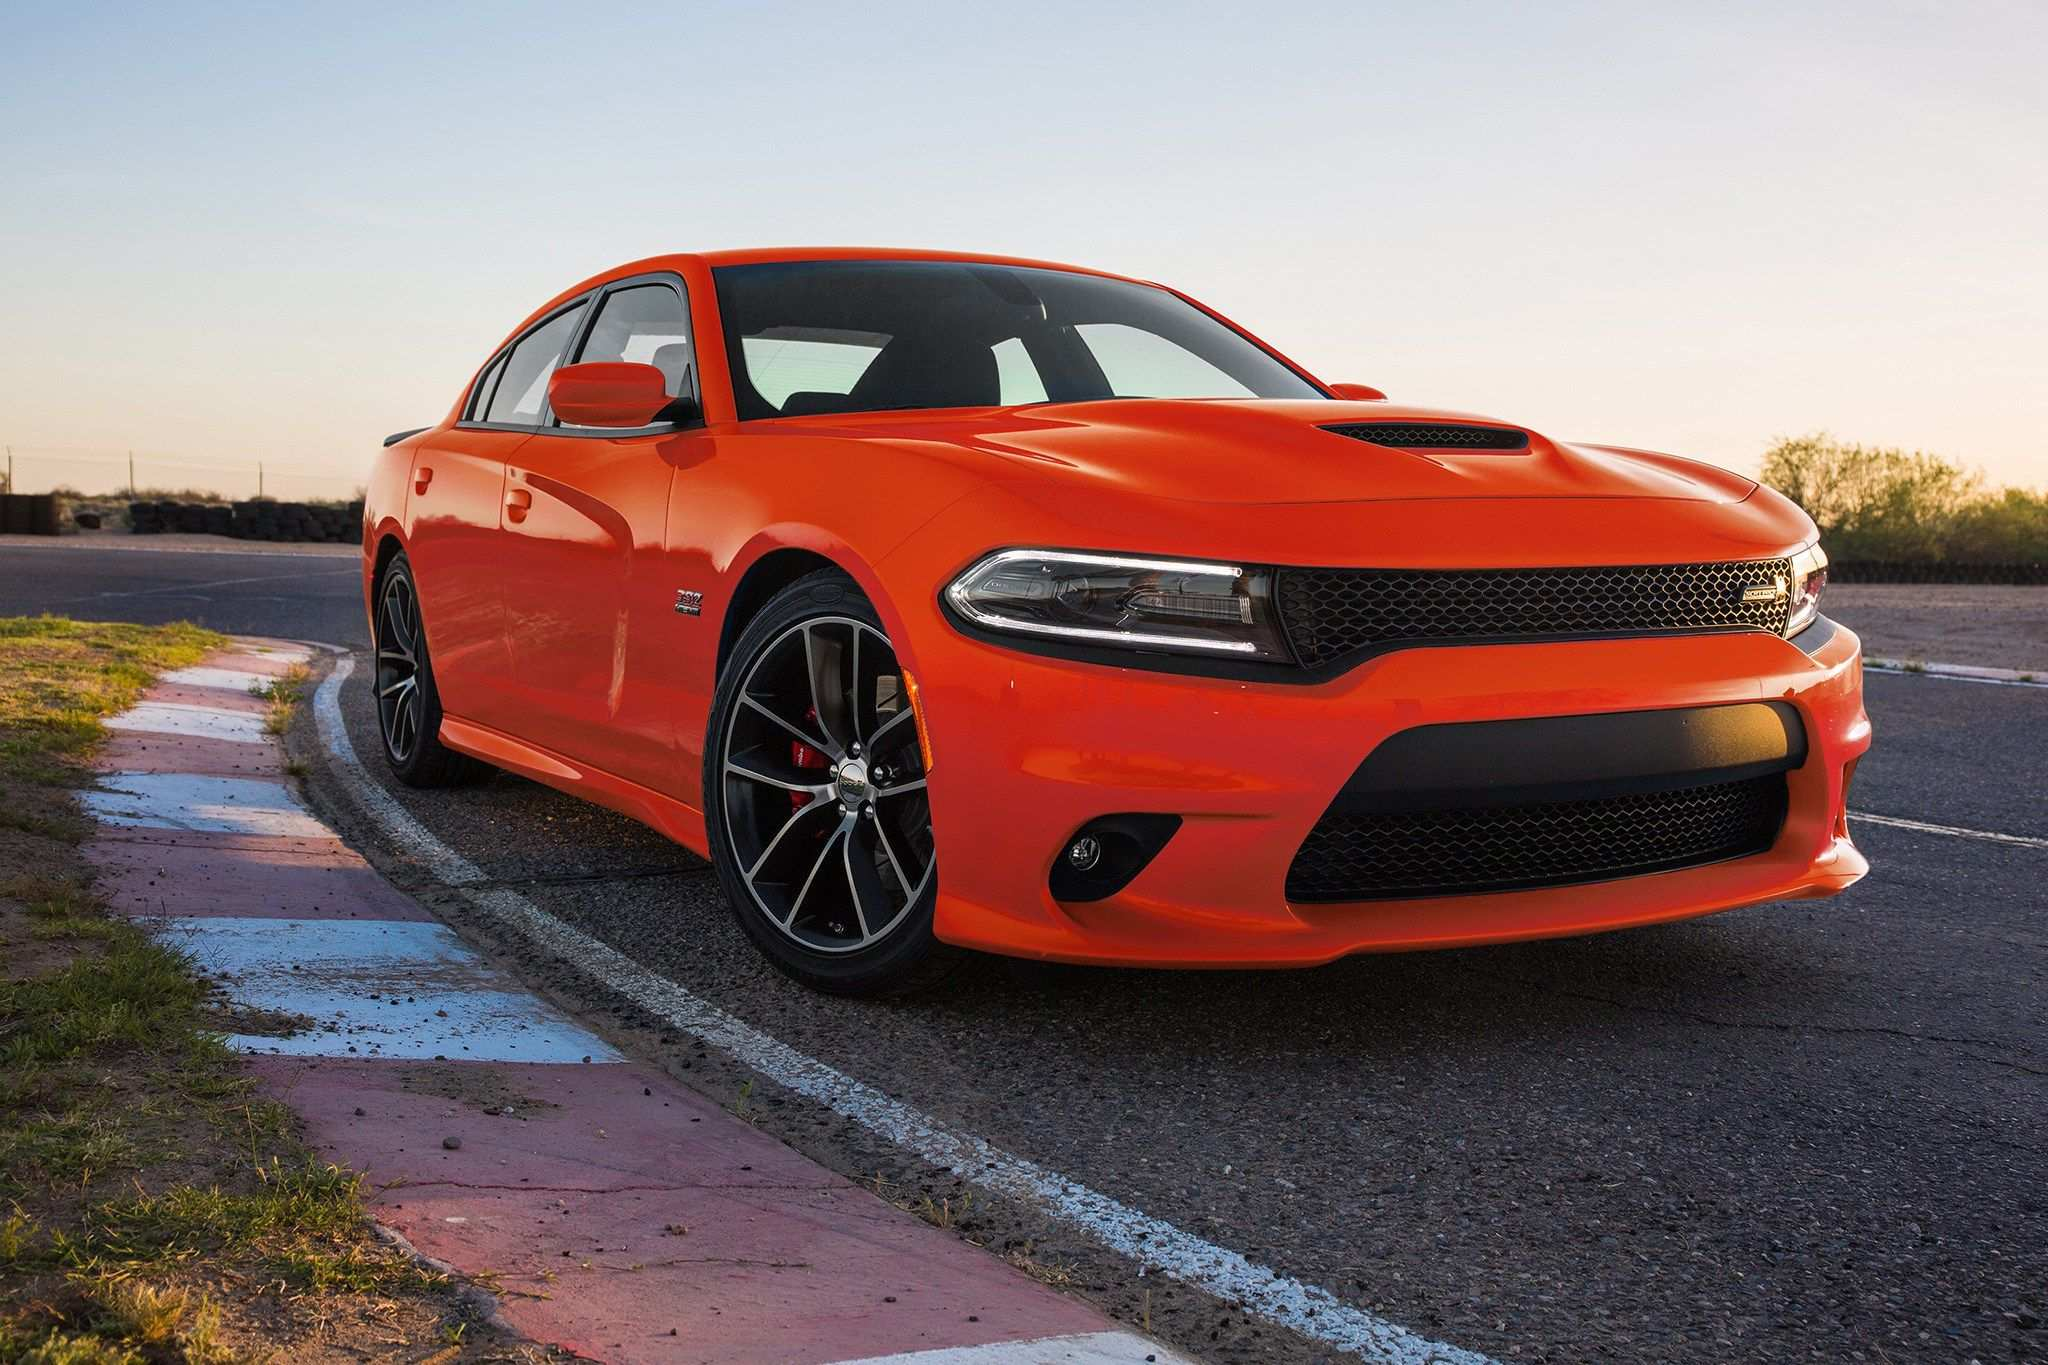 22 Concept of 2020 Dodge Charger Speed Test for 2020 Dodge Charger